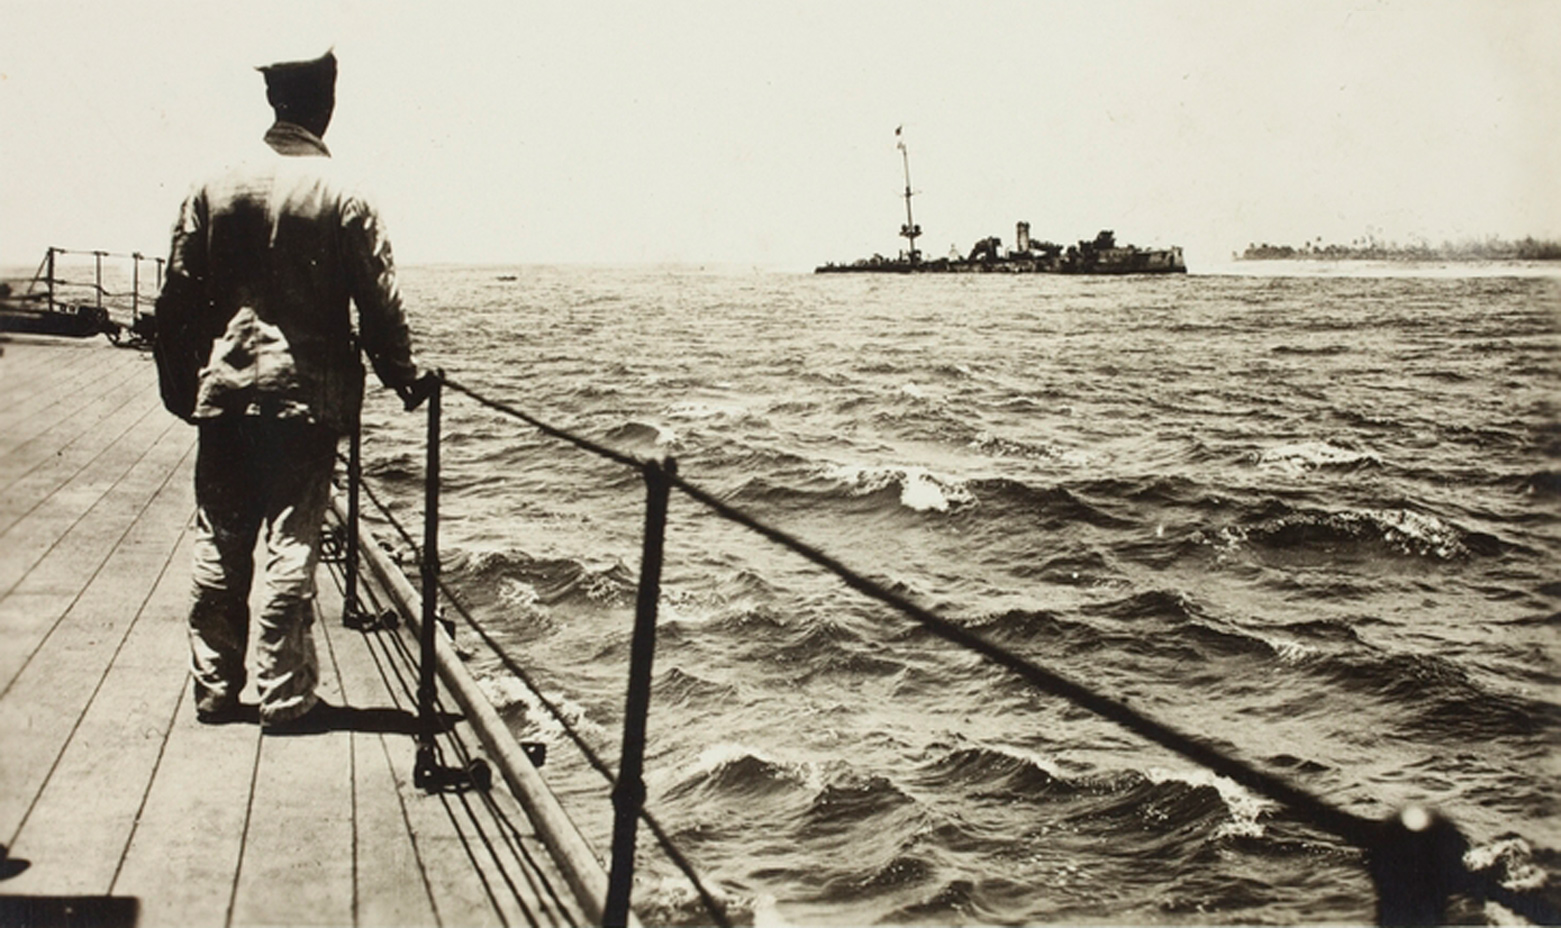 A photo taken from the deck of the Sydney after running the Emden aground